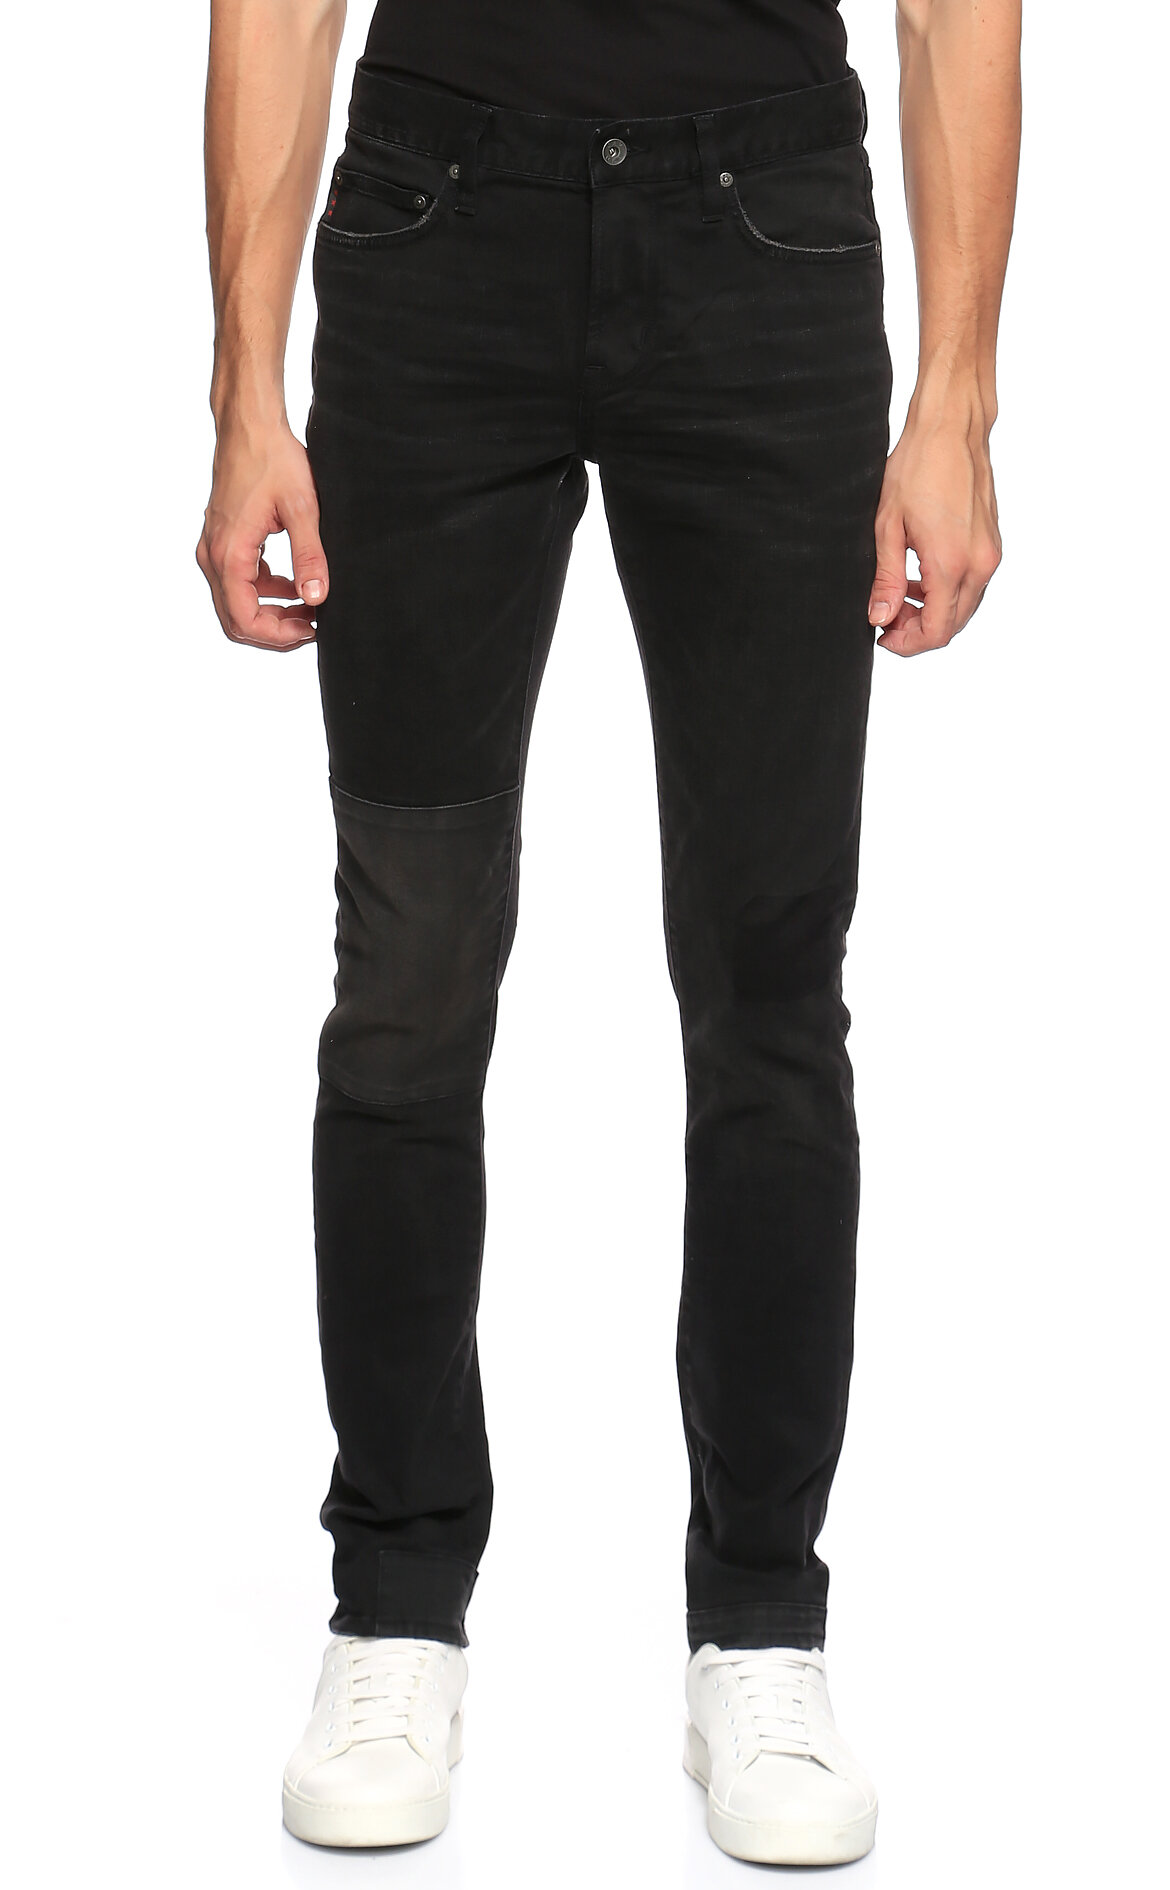 John Varvatos USA-John Varvatos USA Jean Pantolon